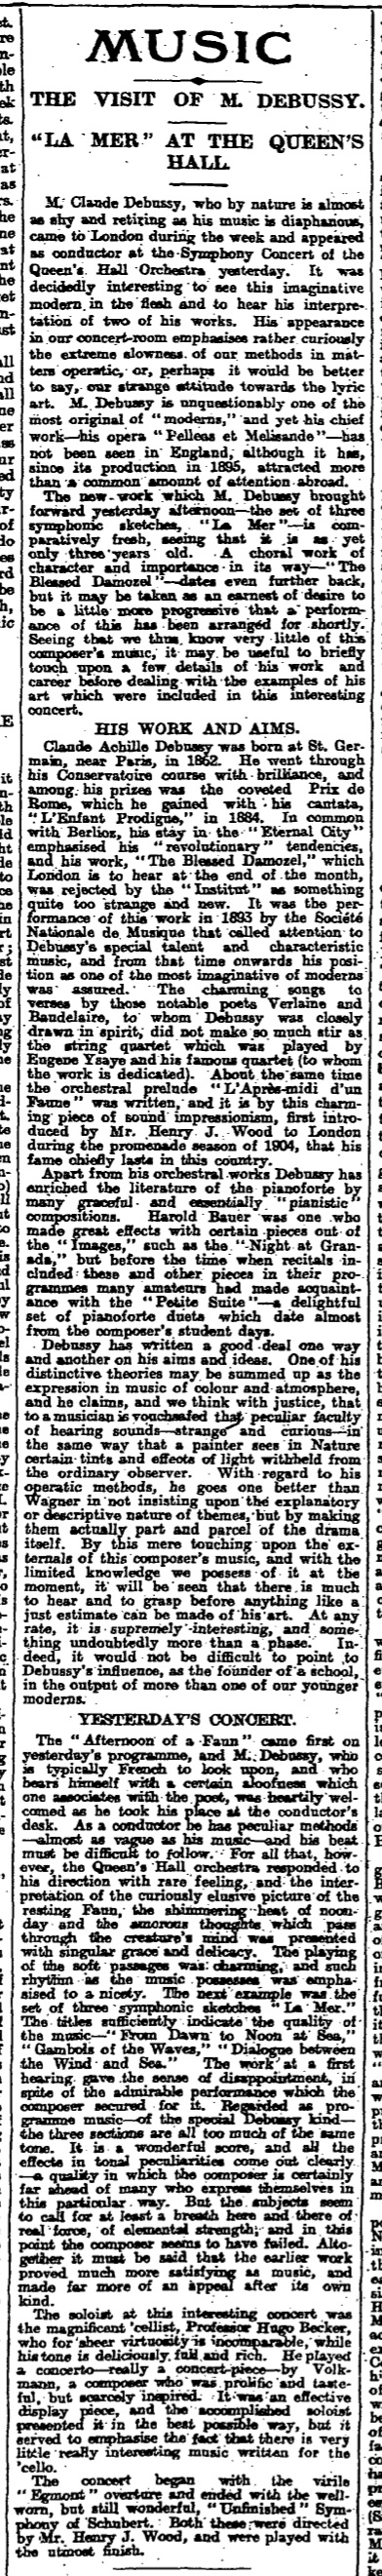 debussy one of the most original of moderns from the archive   the full article